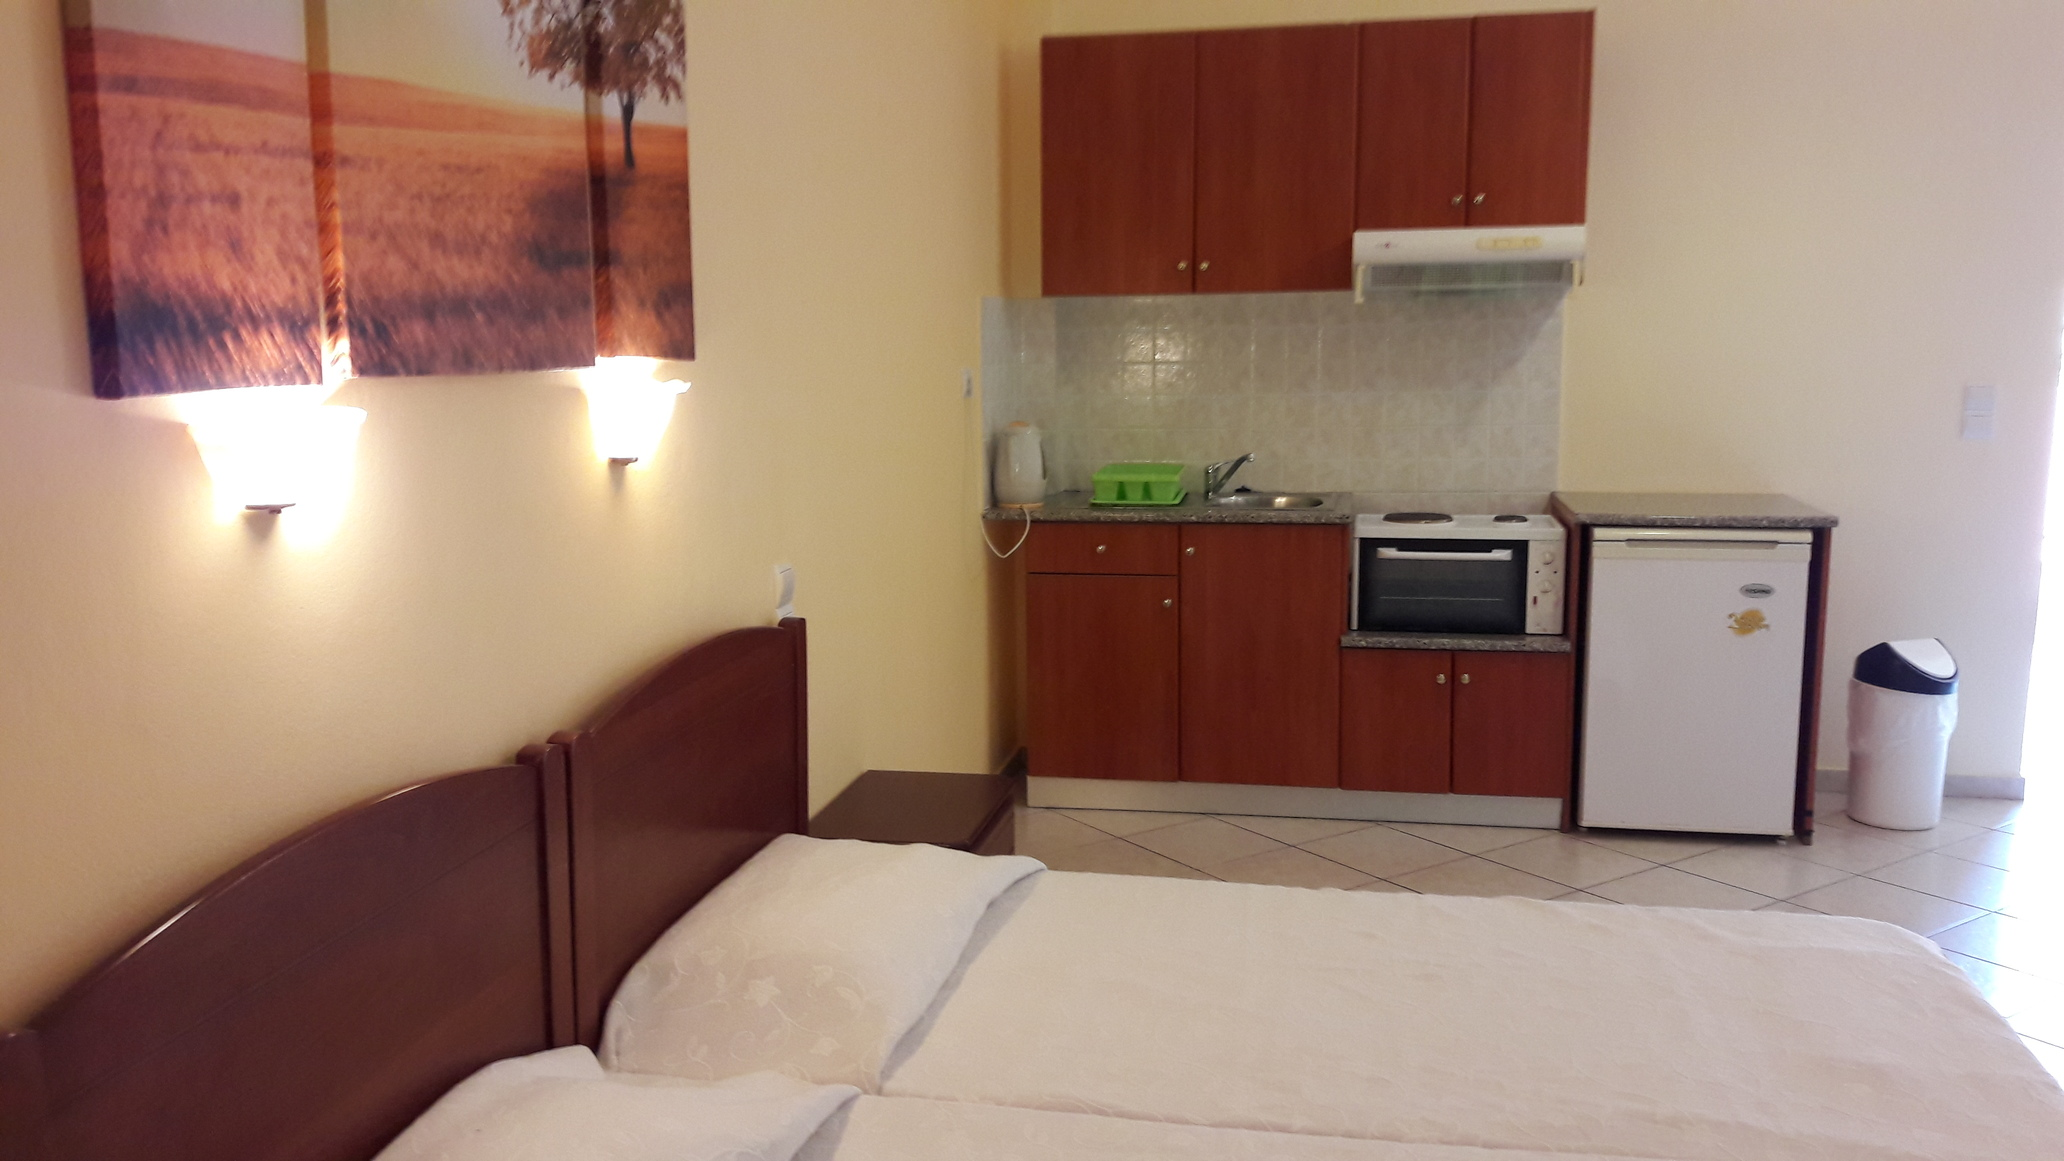 English For Hotel Types Of Rooms With Description